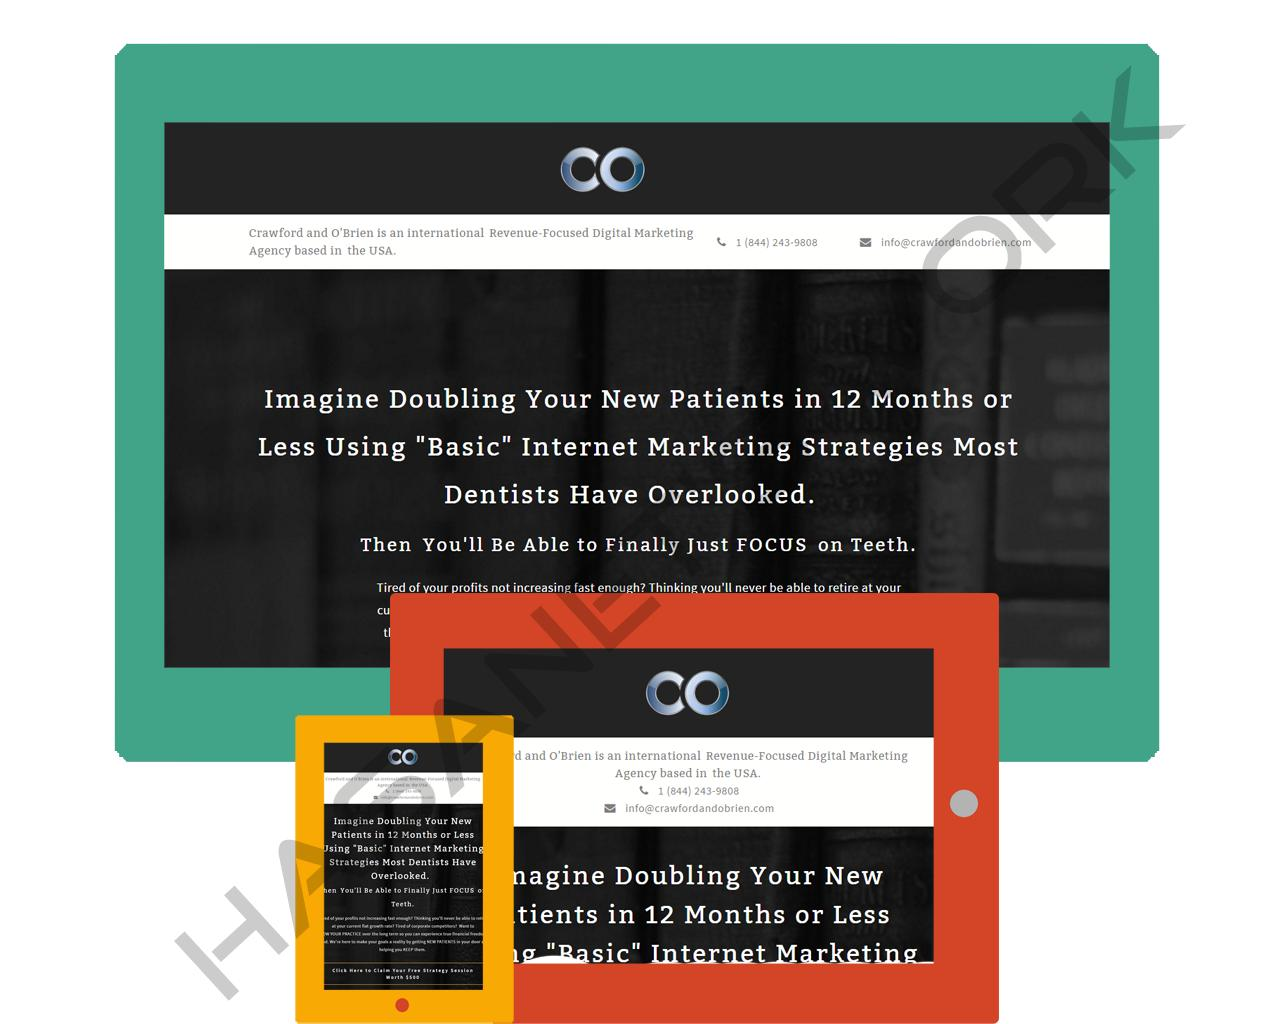 Responsive Landing Page Development with Leadpages Template by hasanet - 99501